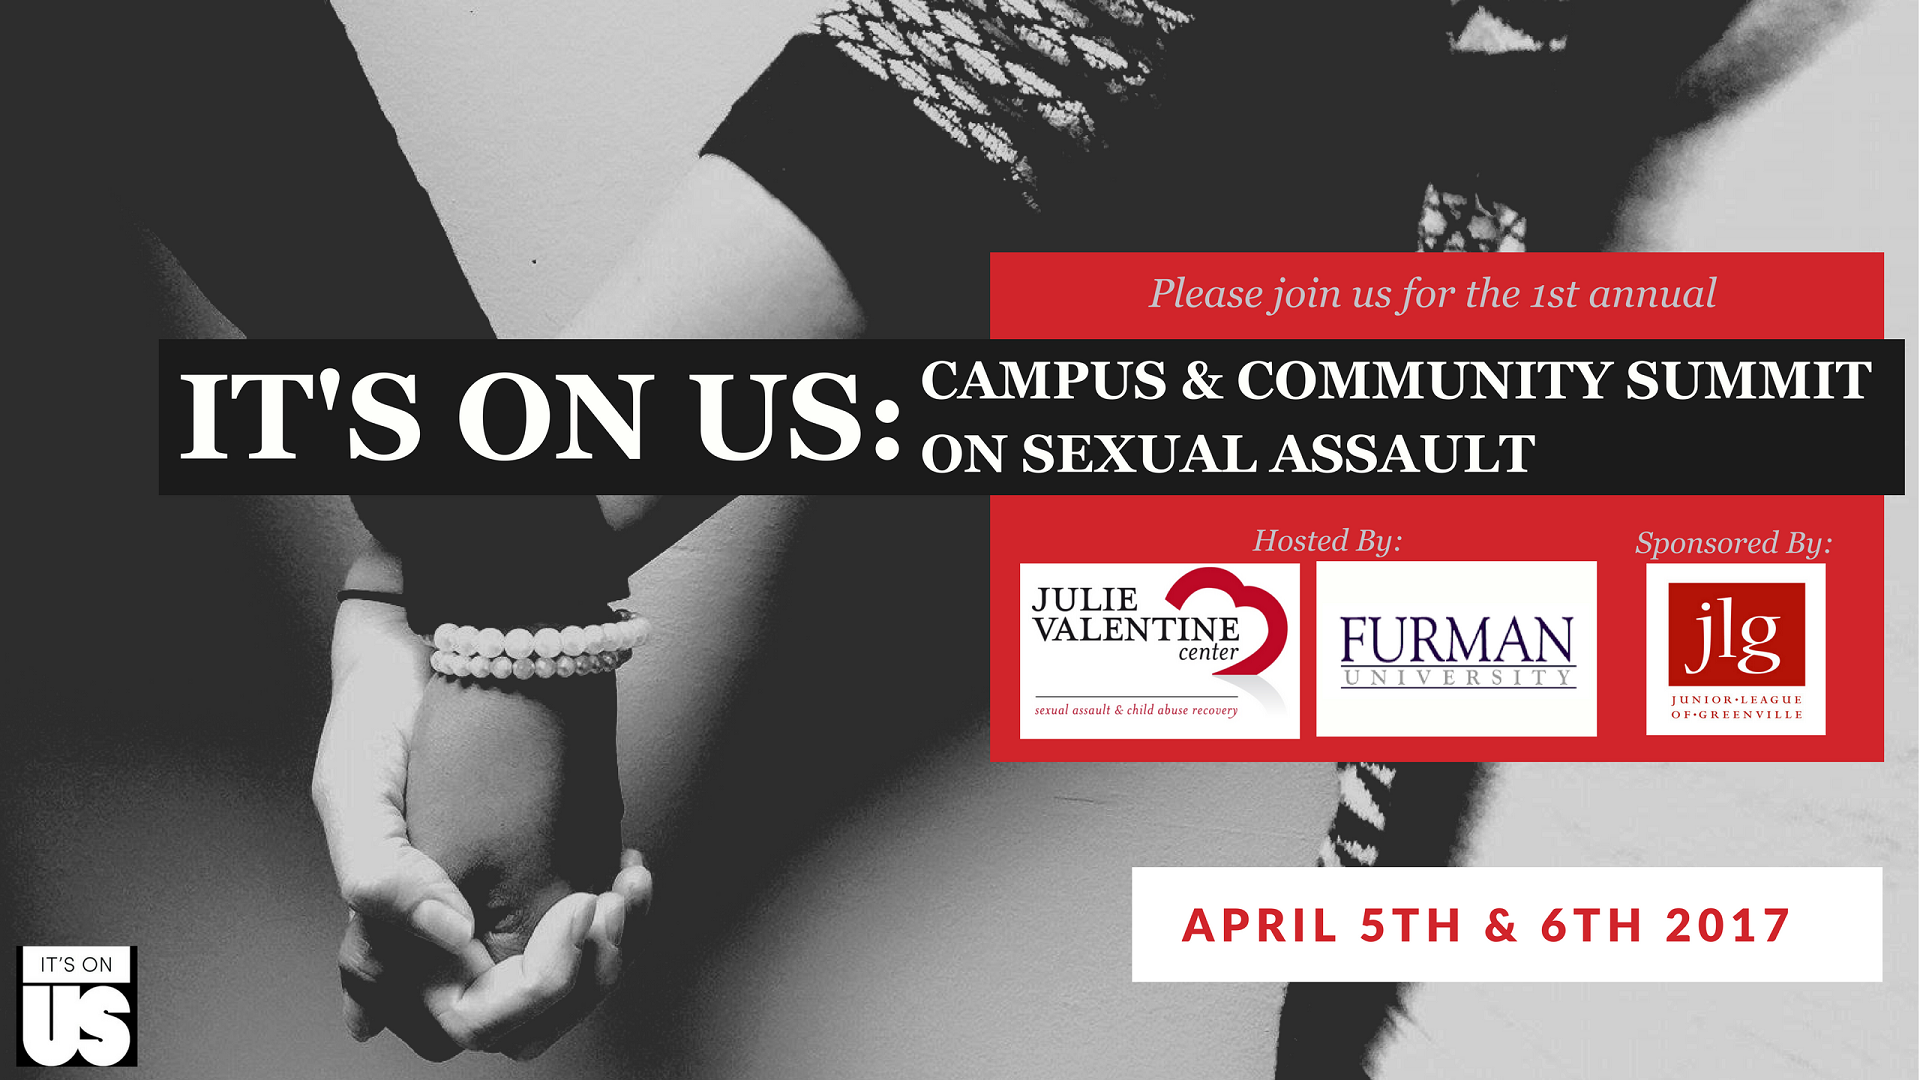 It's On Us: Campus & Community Summit on Sexual Assault